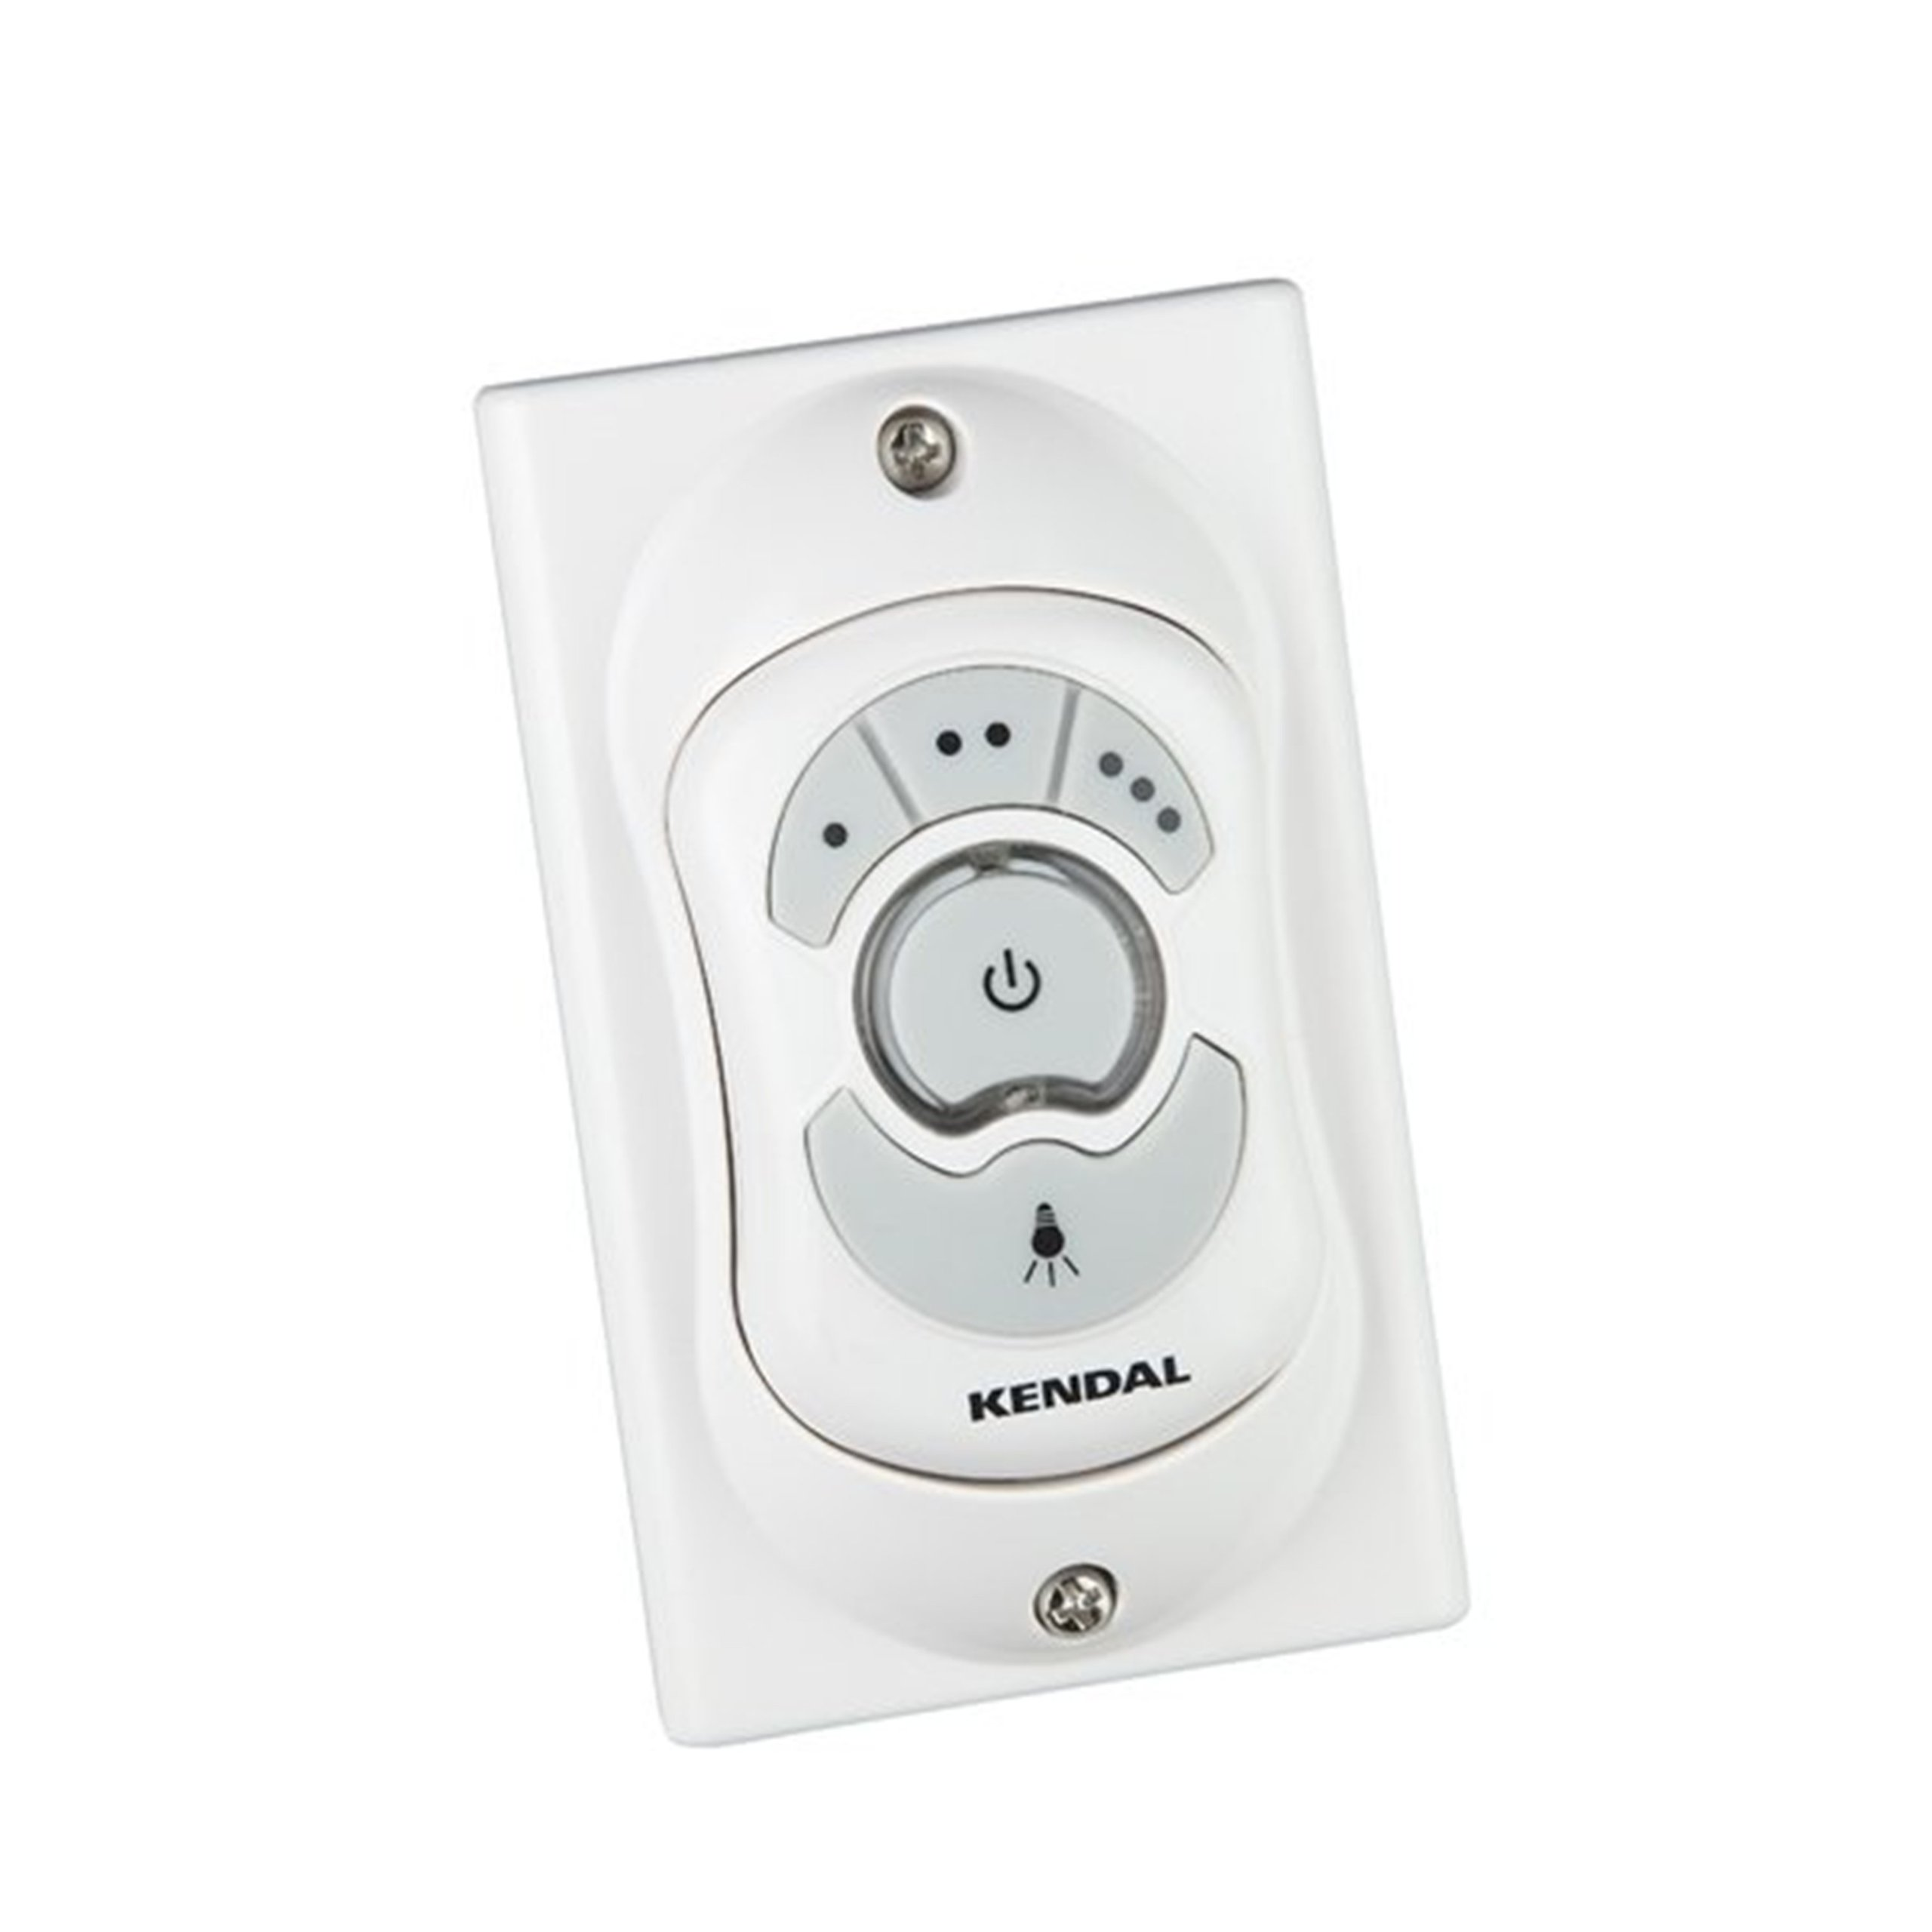 Kendal Lighting RC8000 Wall Mounted/Hand-Held Remote Control, White Finish by Kendal Lighting